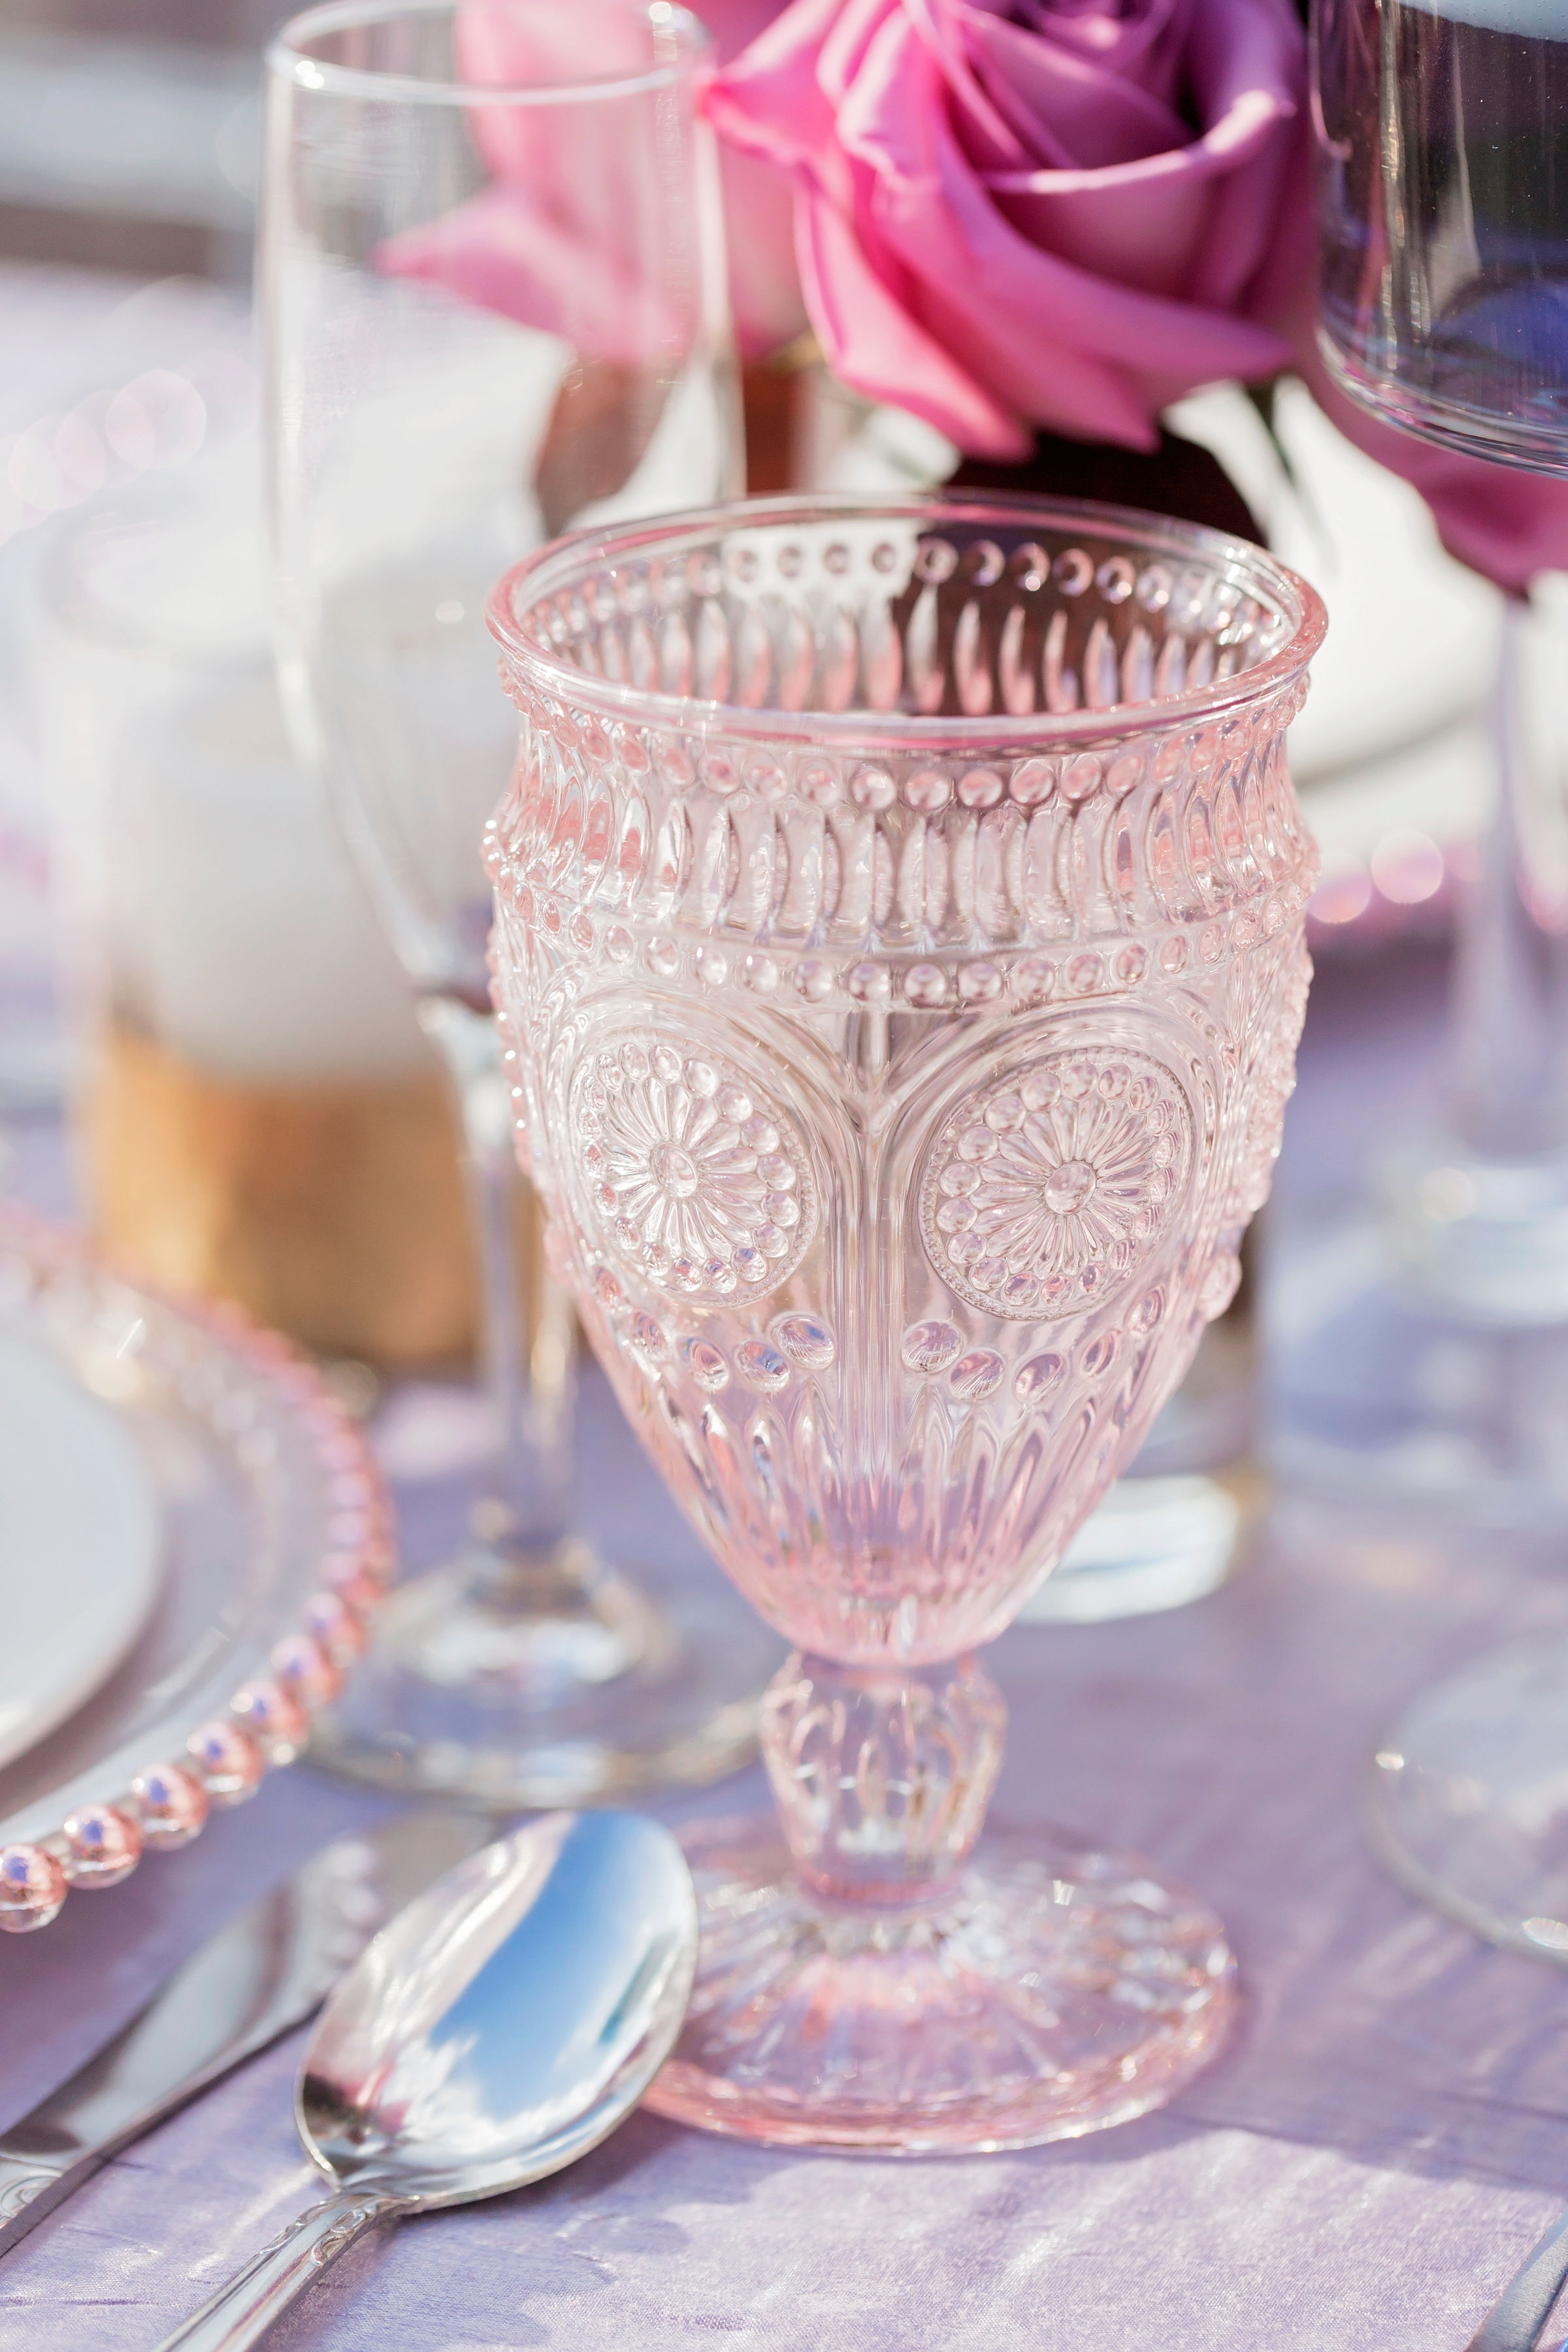 Blush Goblet   Price: $1.75  Quantity Available: 160